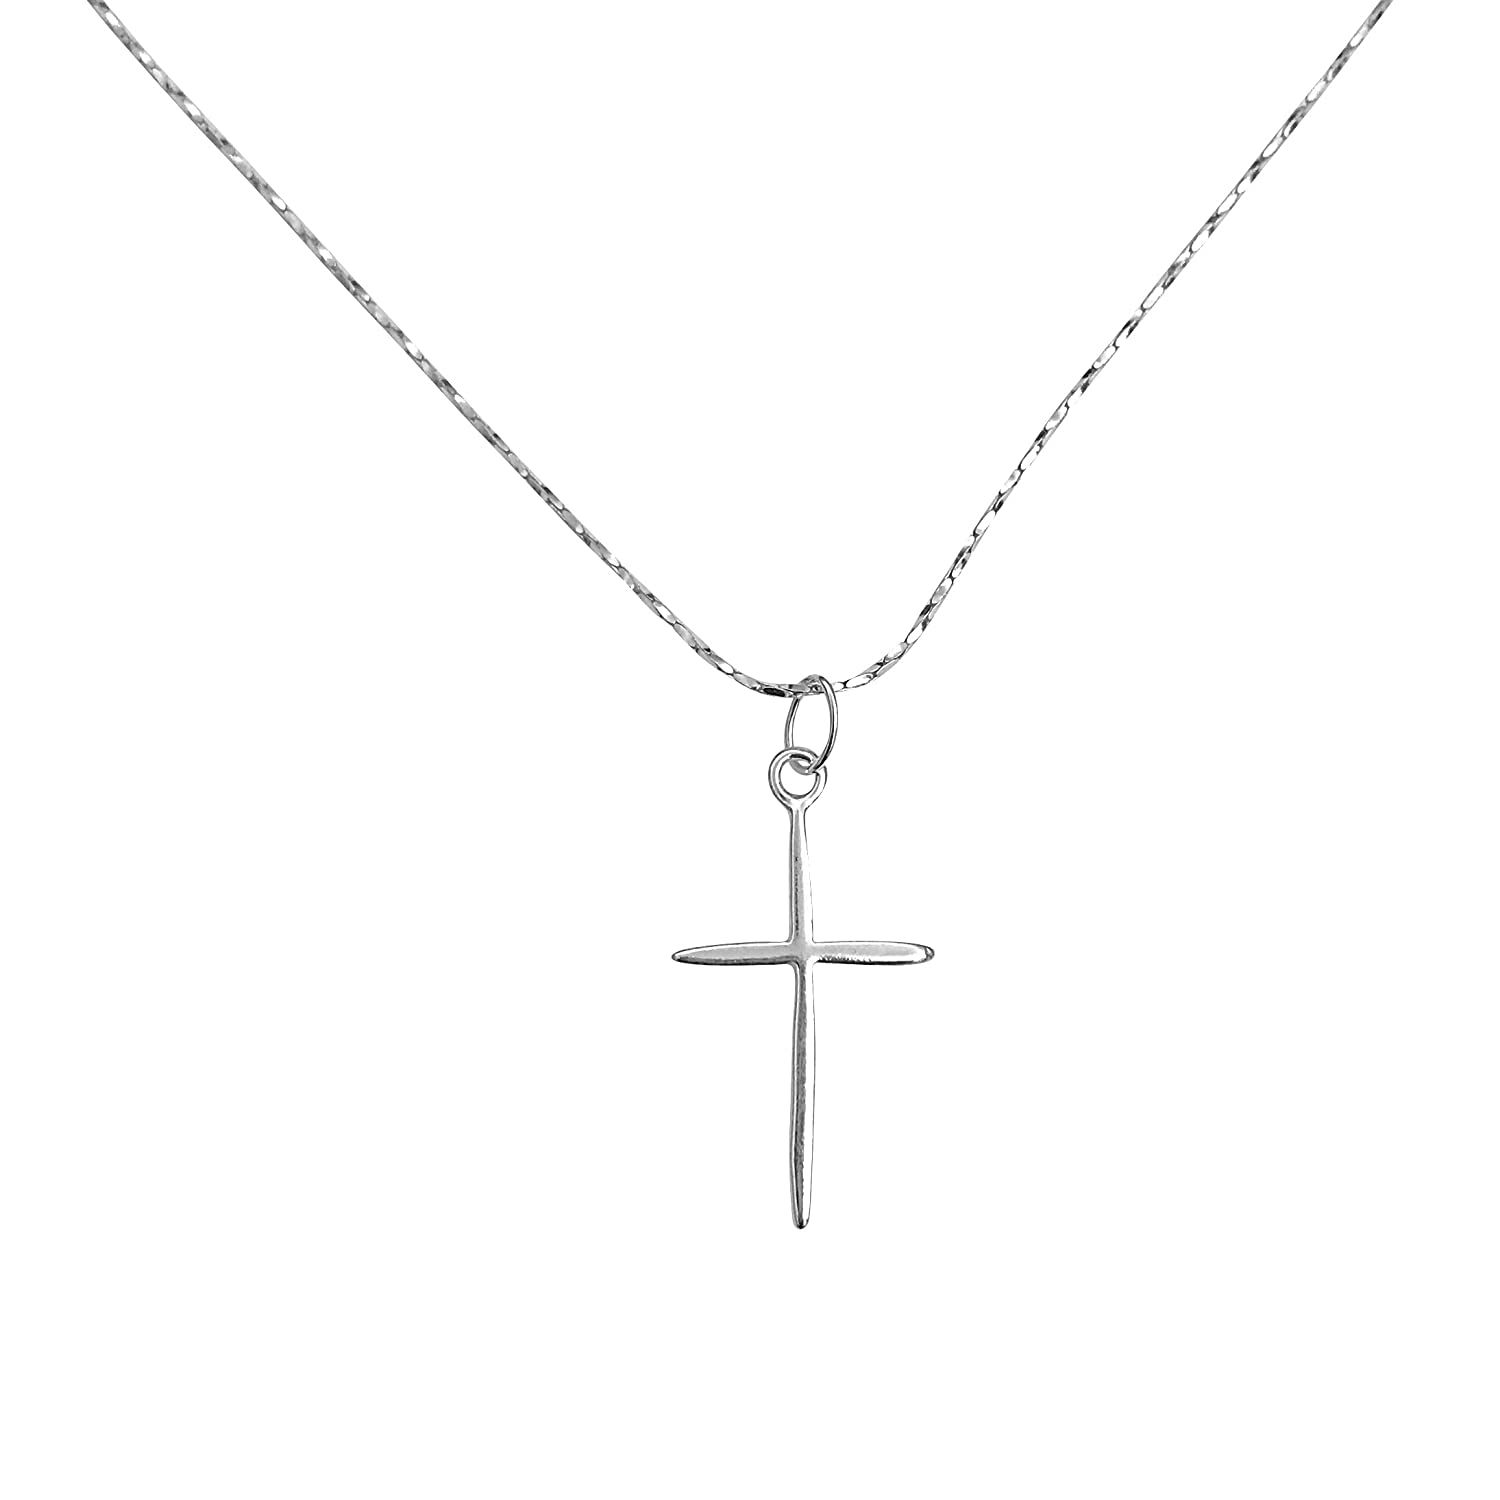 DragonWeave Petite Rounded Sterling Silver Cross Charm Necklace with Gossamer Thin Sterling Silver 18 Chain